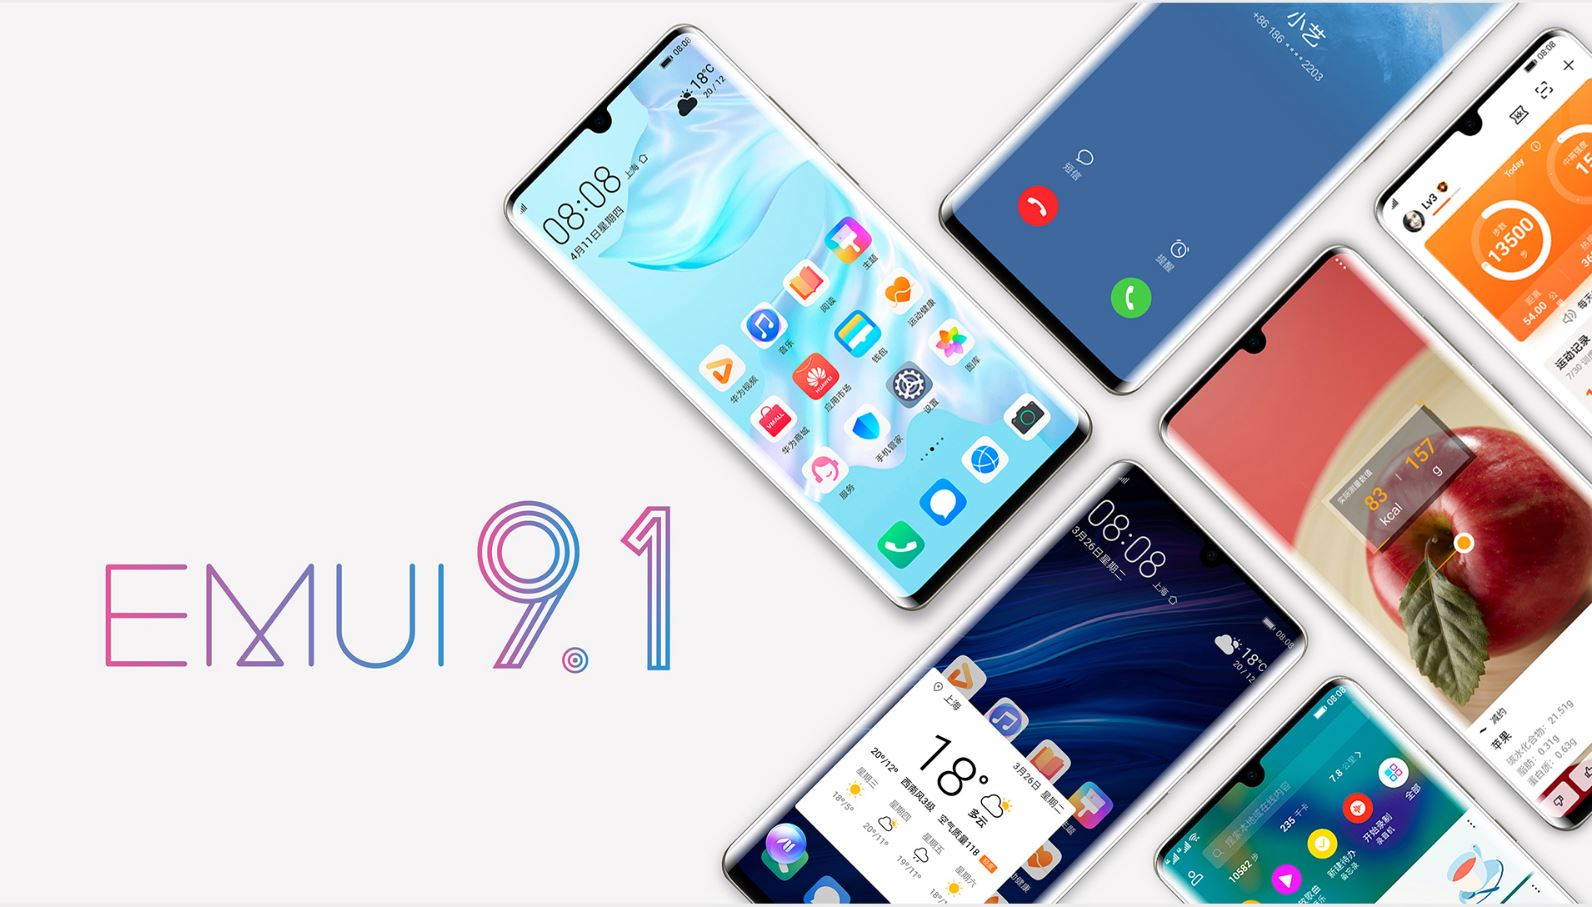 What is EMUI? Complete Details of Huawei's Android skin.